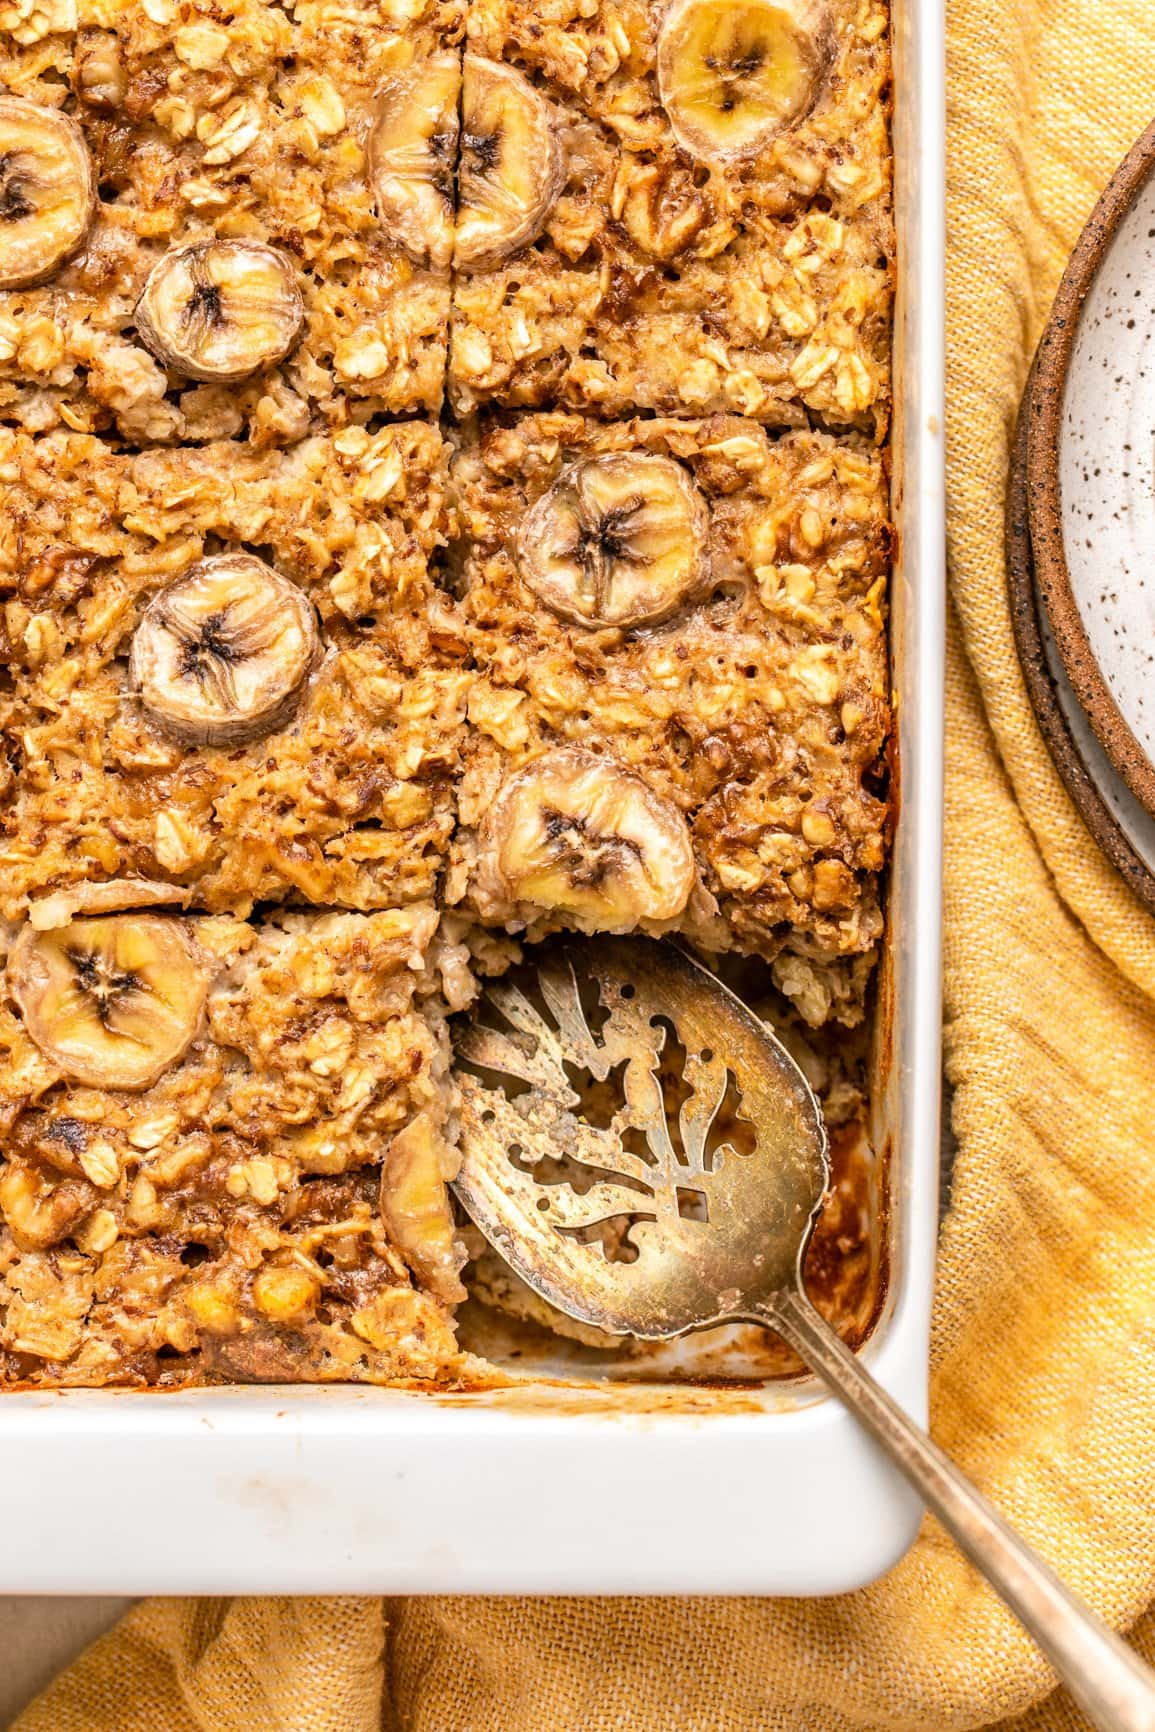 sliced banana bread oatmeal in white baking tray with yellow table linen